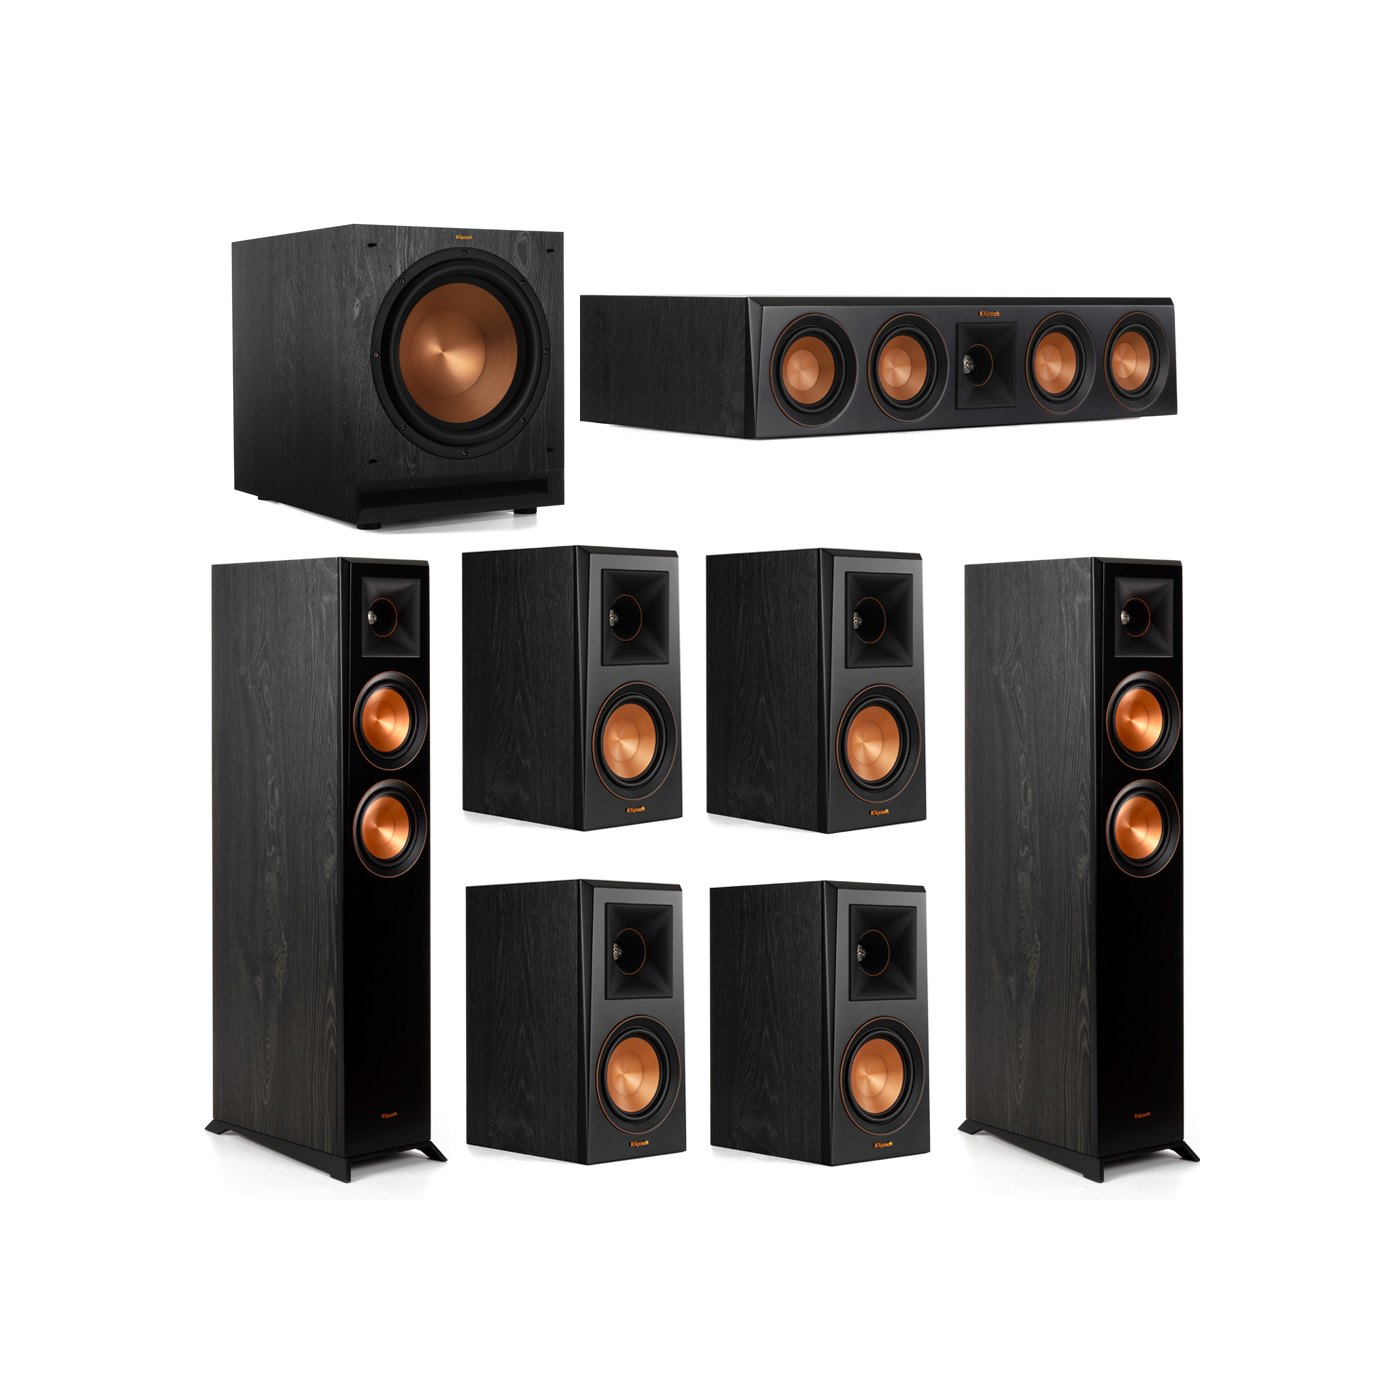 Klipsch 7.1 System with 2 RP-5000F Floorstanding Speakers, 1 Klipsch RP-404C Center Speaker, 4 Klipsch RP-500M Surround Speakers, 1 Klipsch SPL-120 Subwoofer